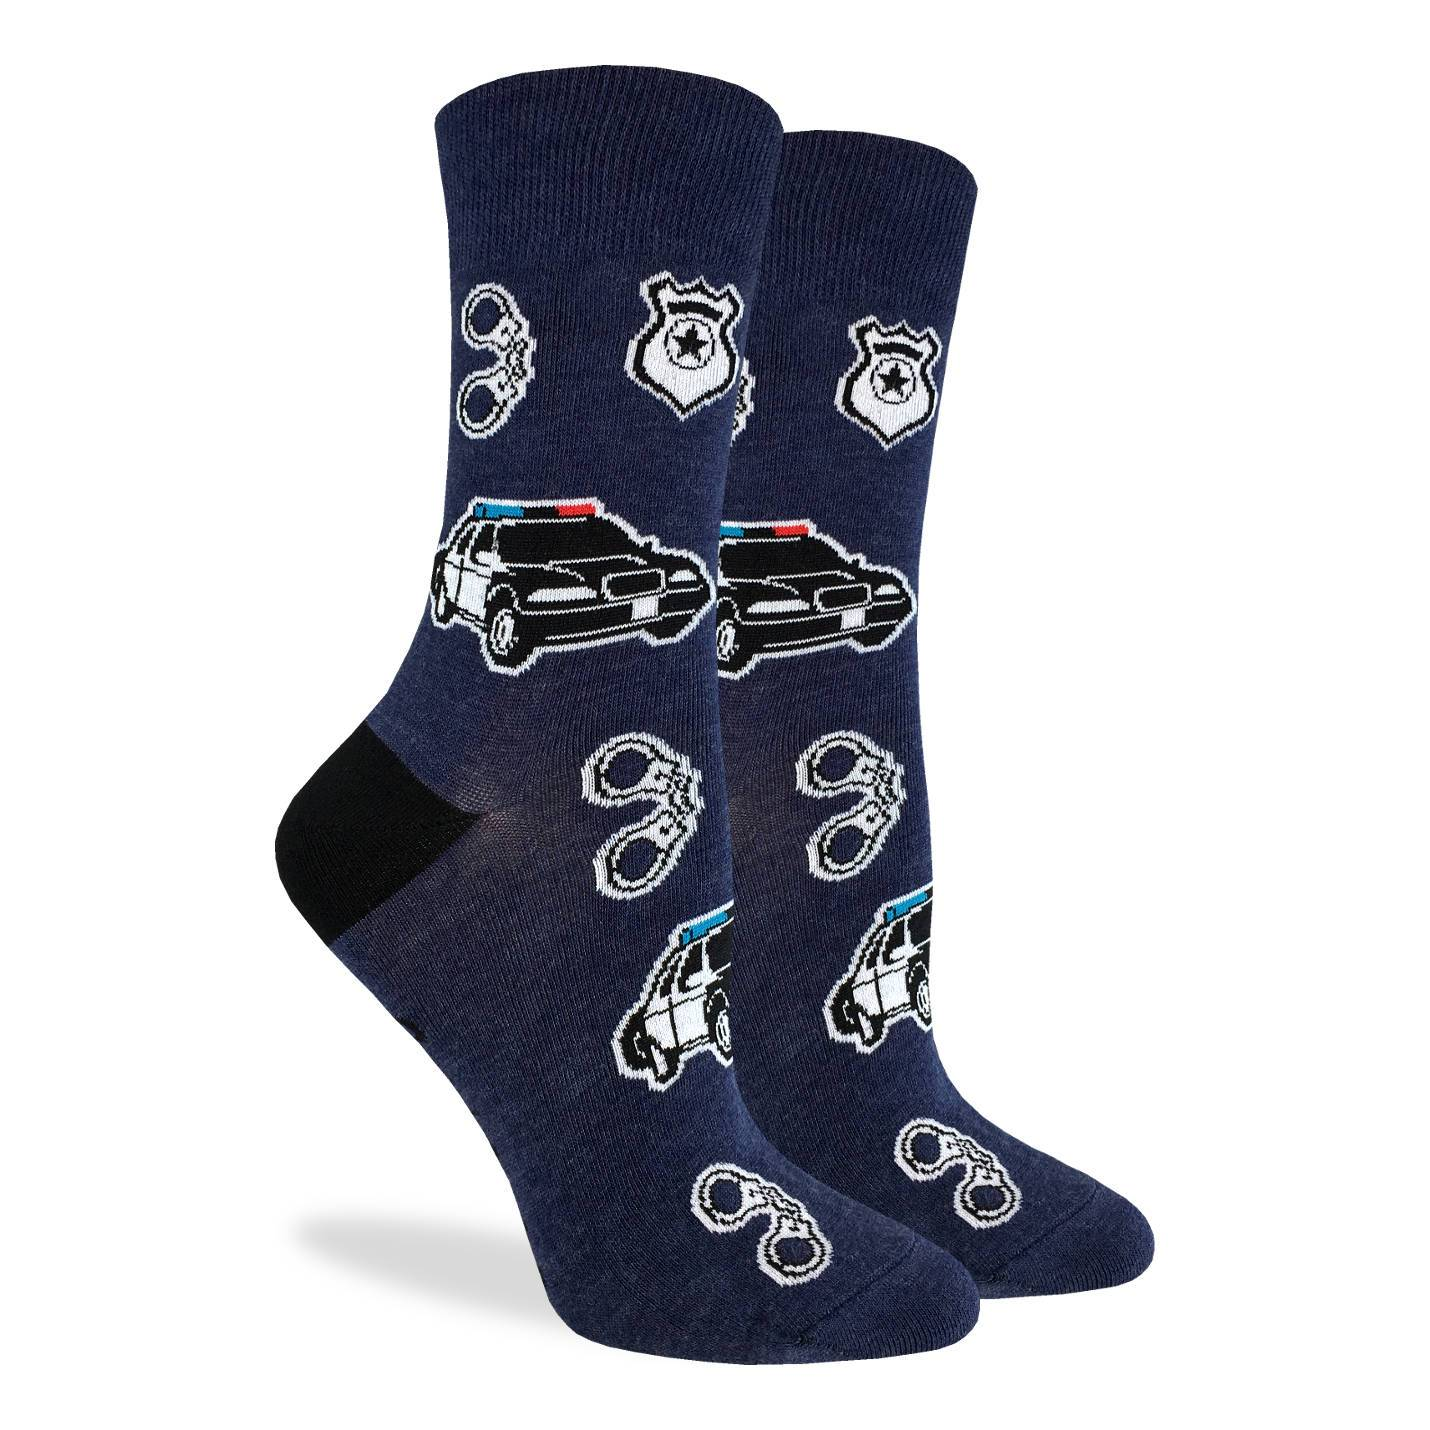 Women's Police Socks - Good Luck Sock